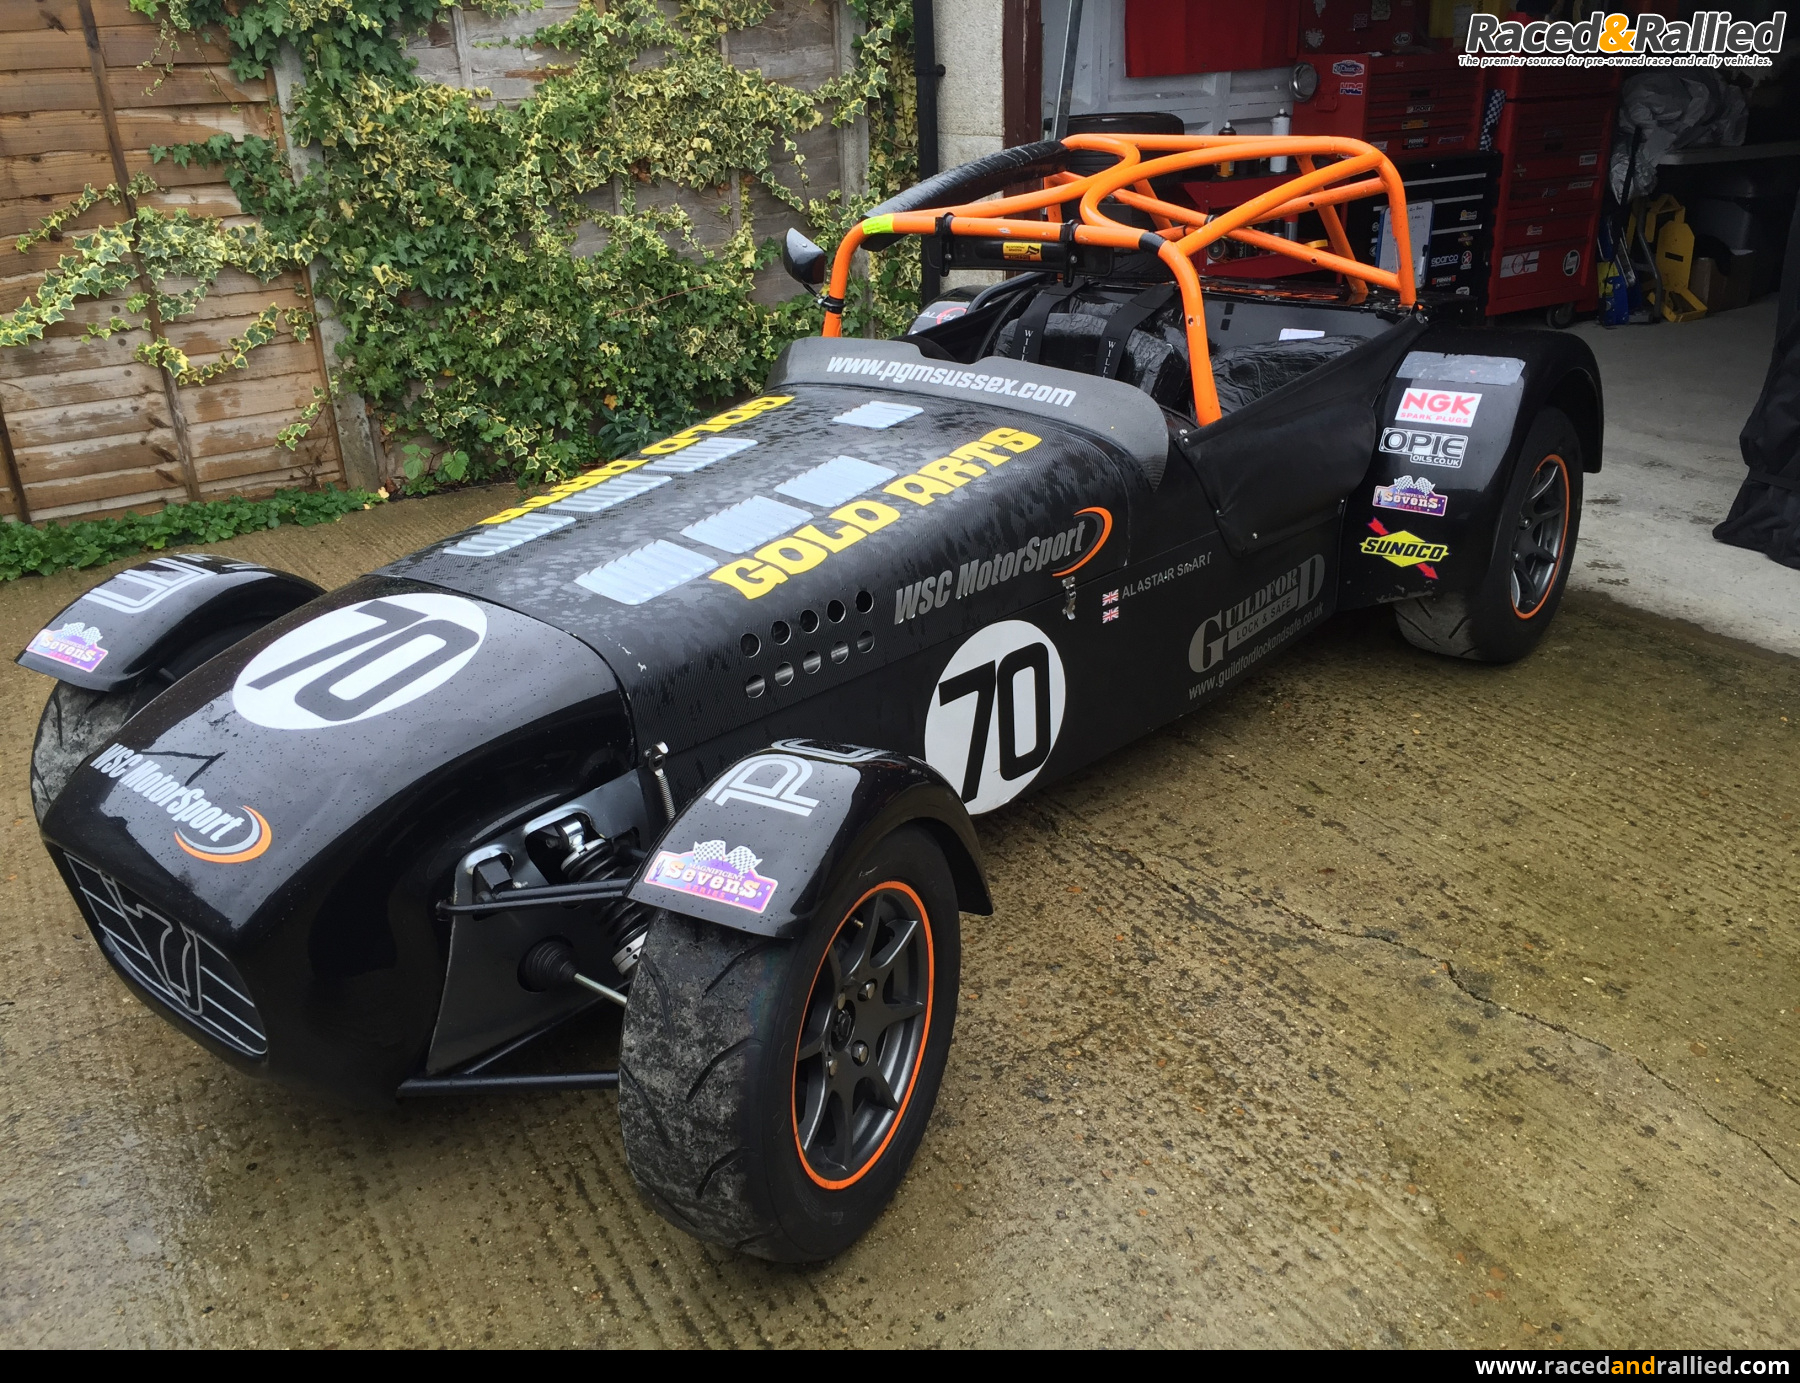 Caterham - 2007 Sigma powered For Sale | Race Cars for sale at Raced